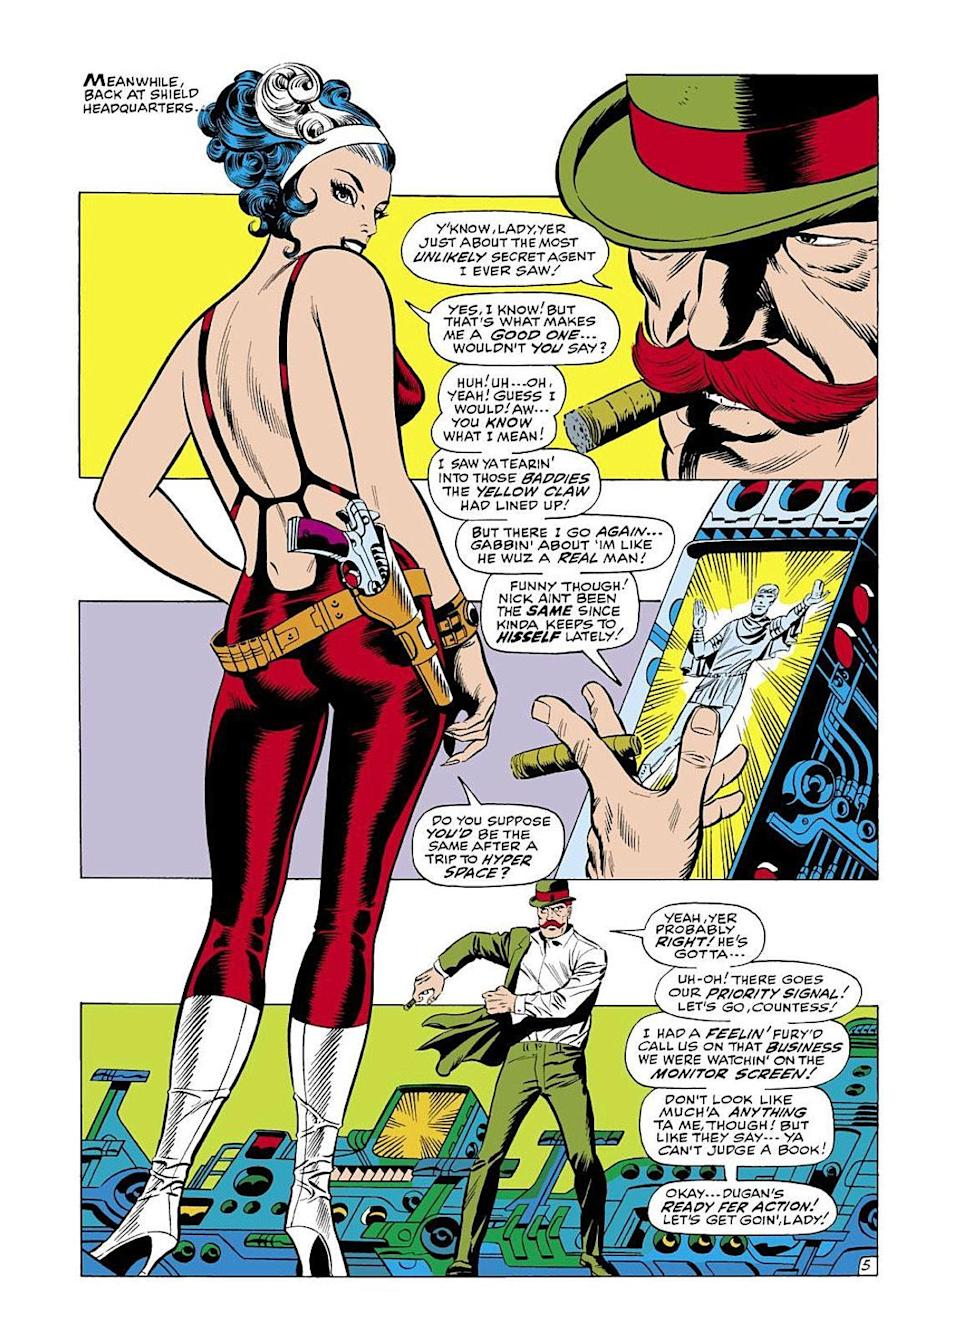 Contessa Valentina Allegra de Fontaine in Marvel comics